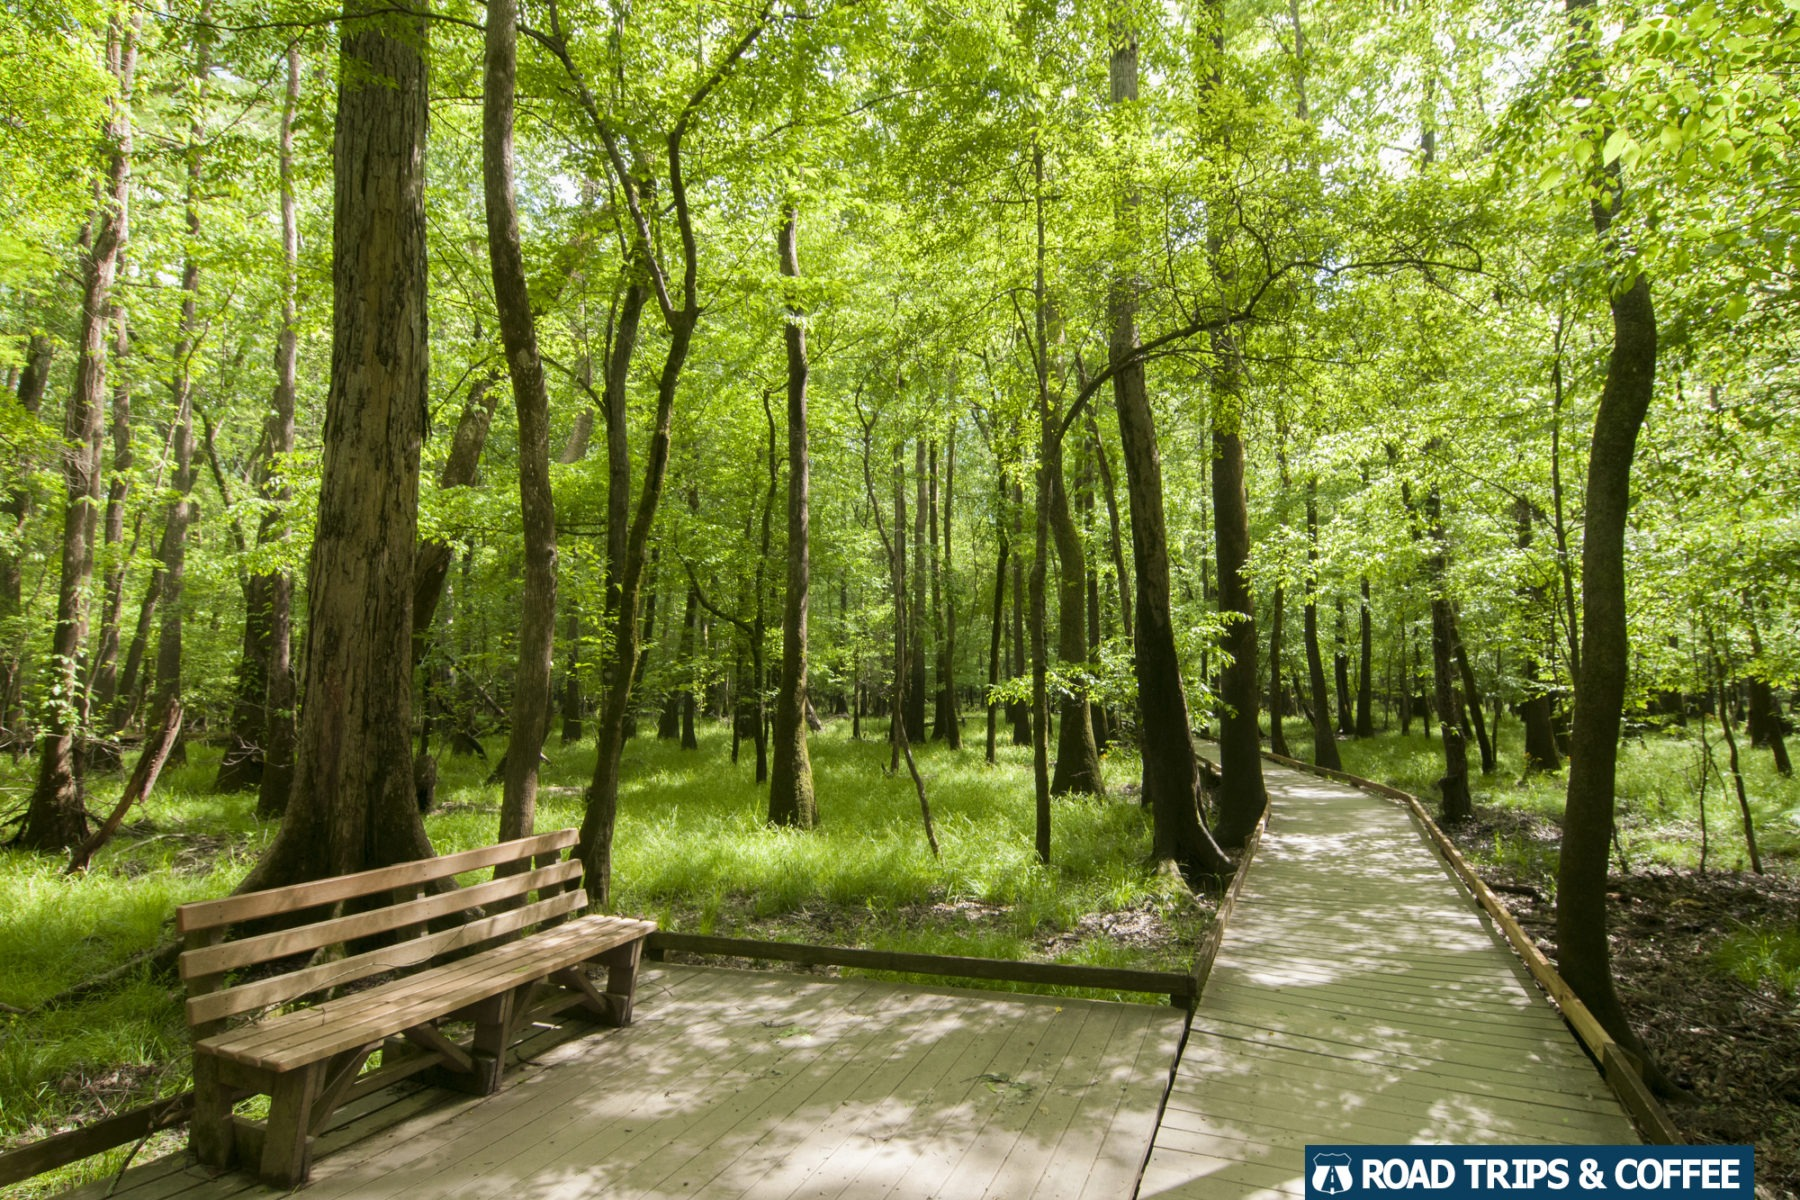 A wooden boardwalk stretches along between towering trees with a bench for enjoying the view at Congaree National Park in South Carolina